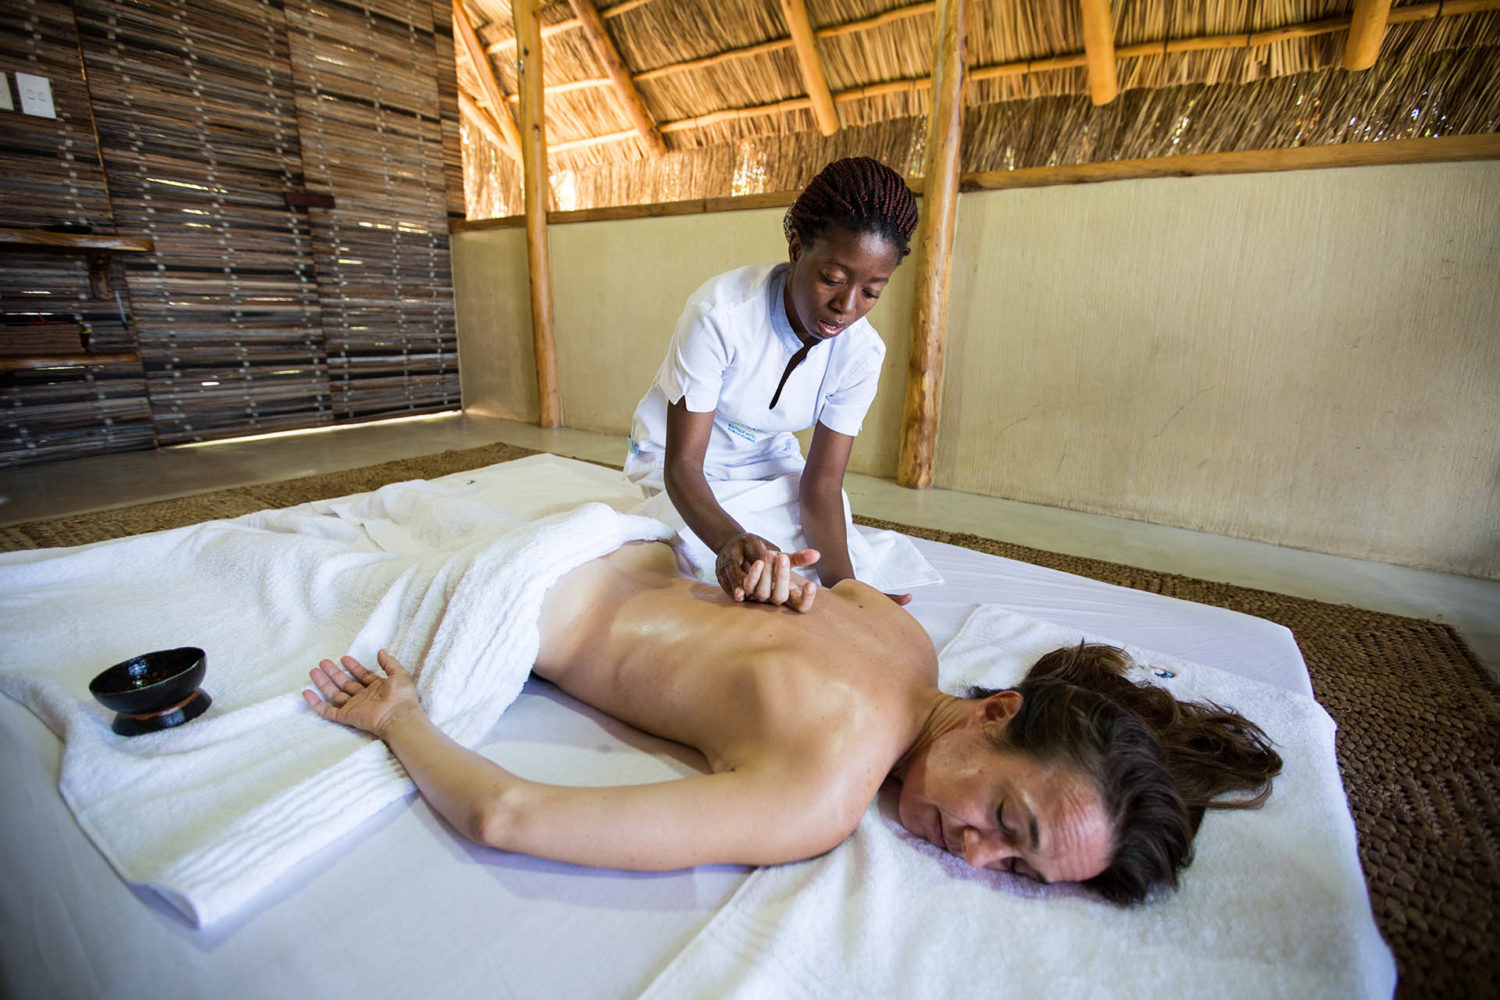 bahia-mar-mozambique-lodges-vilanculos-zambia-in-style-relaxing-spa-treatment